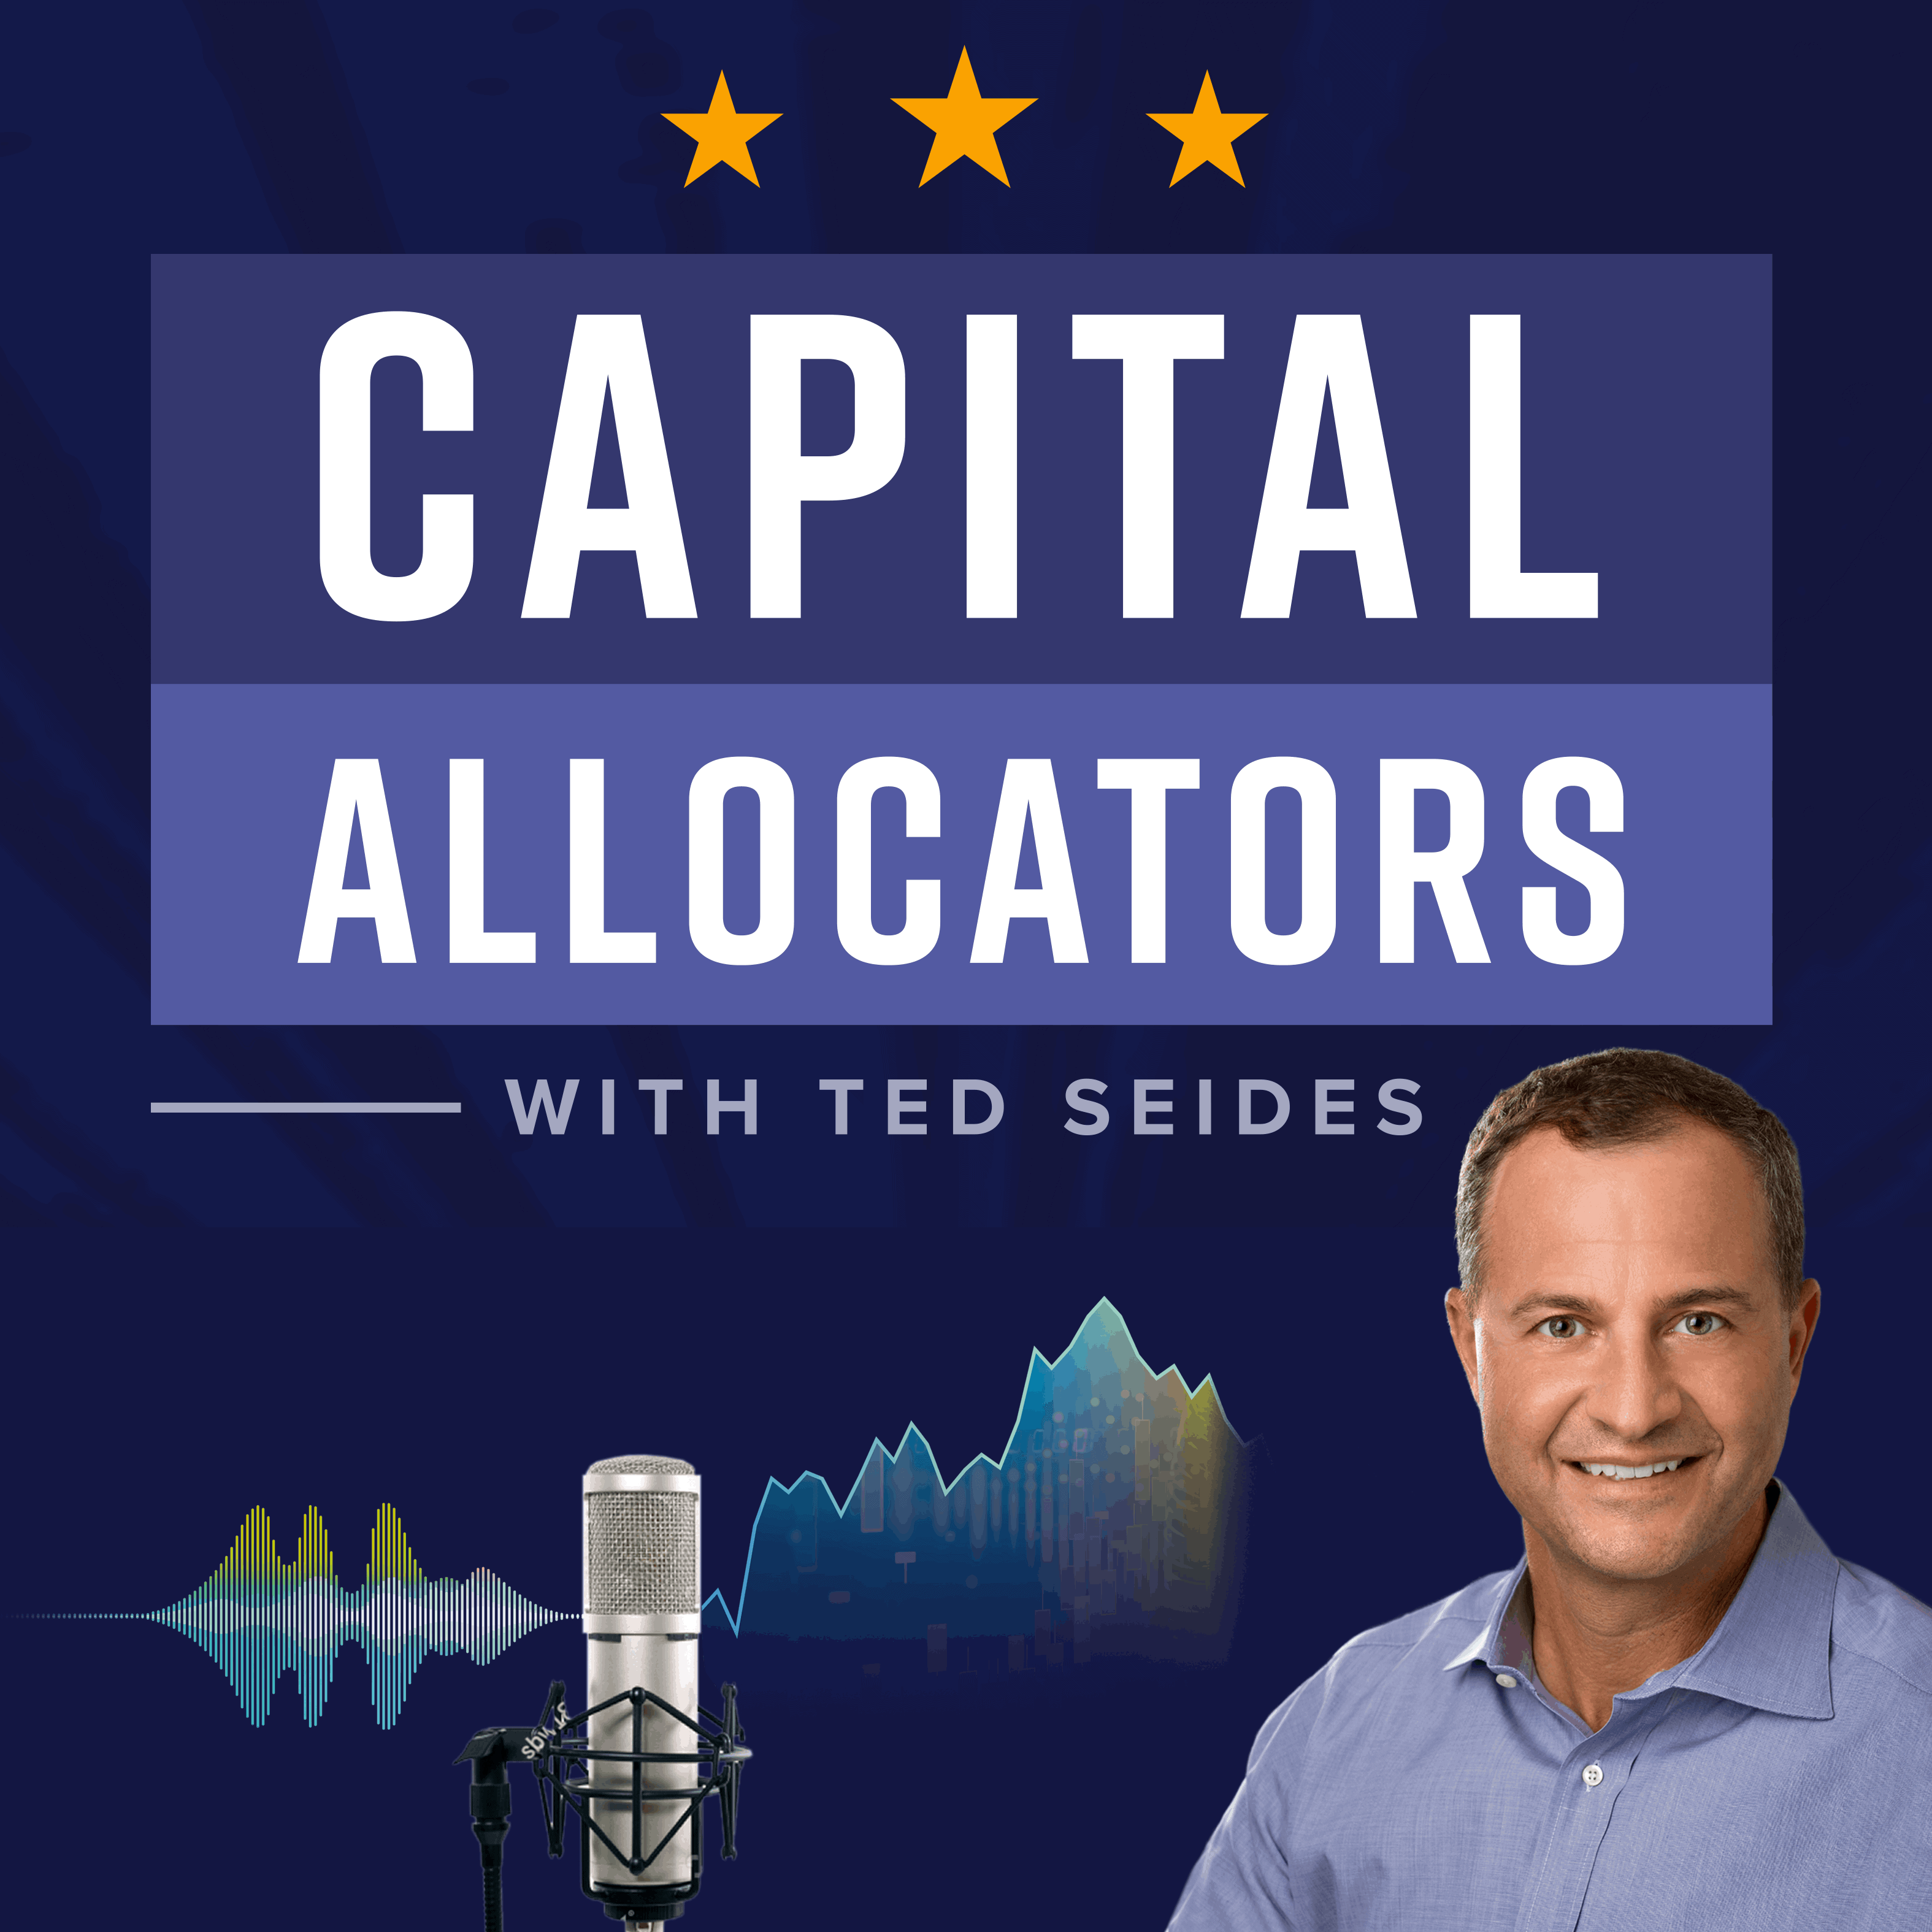 Capital Allocators with Ted Seides